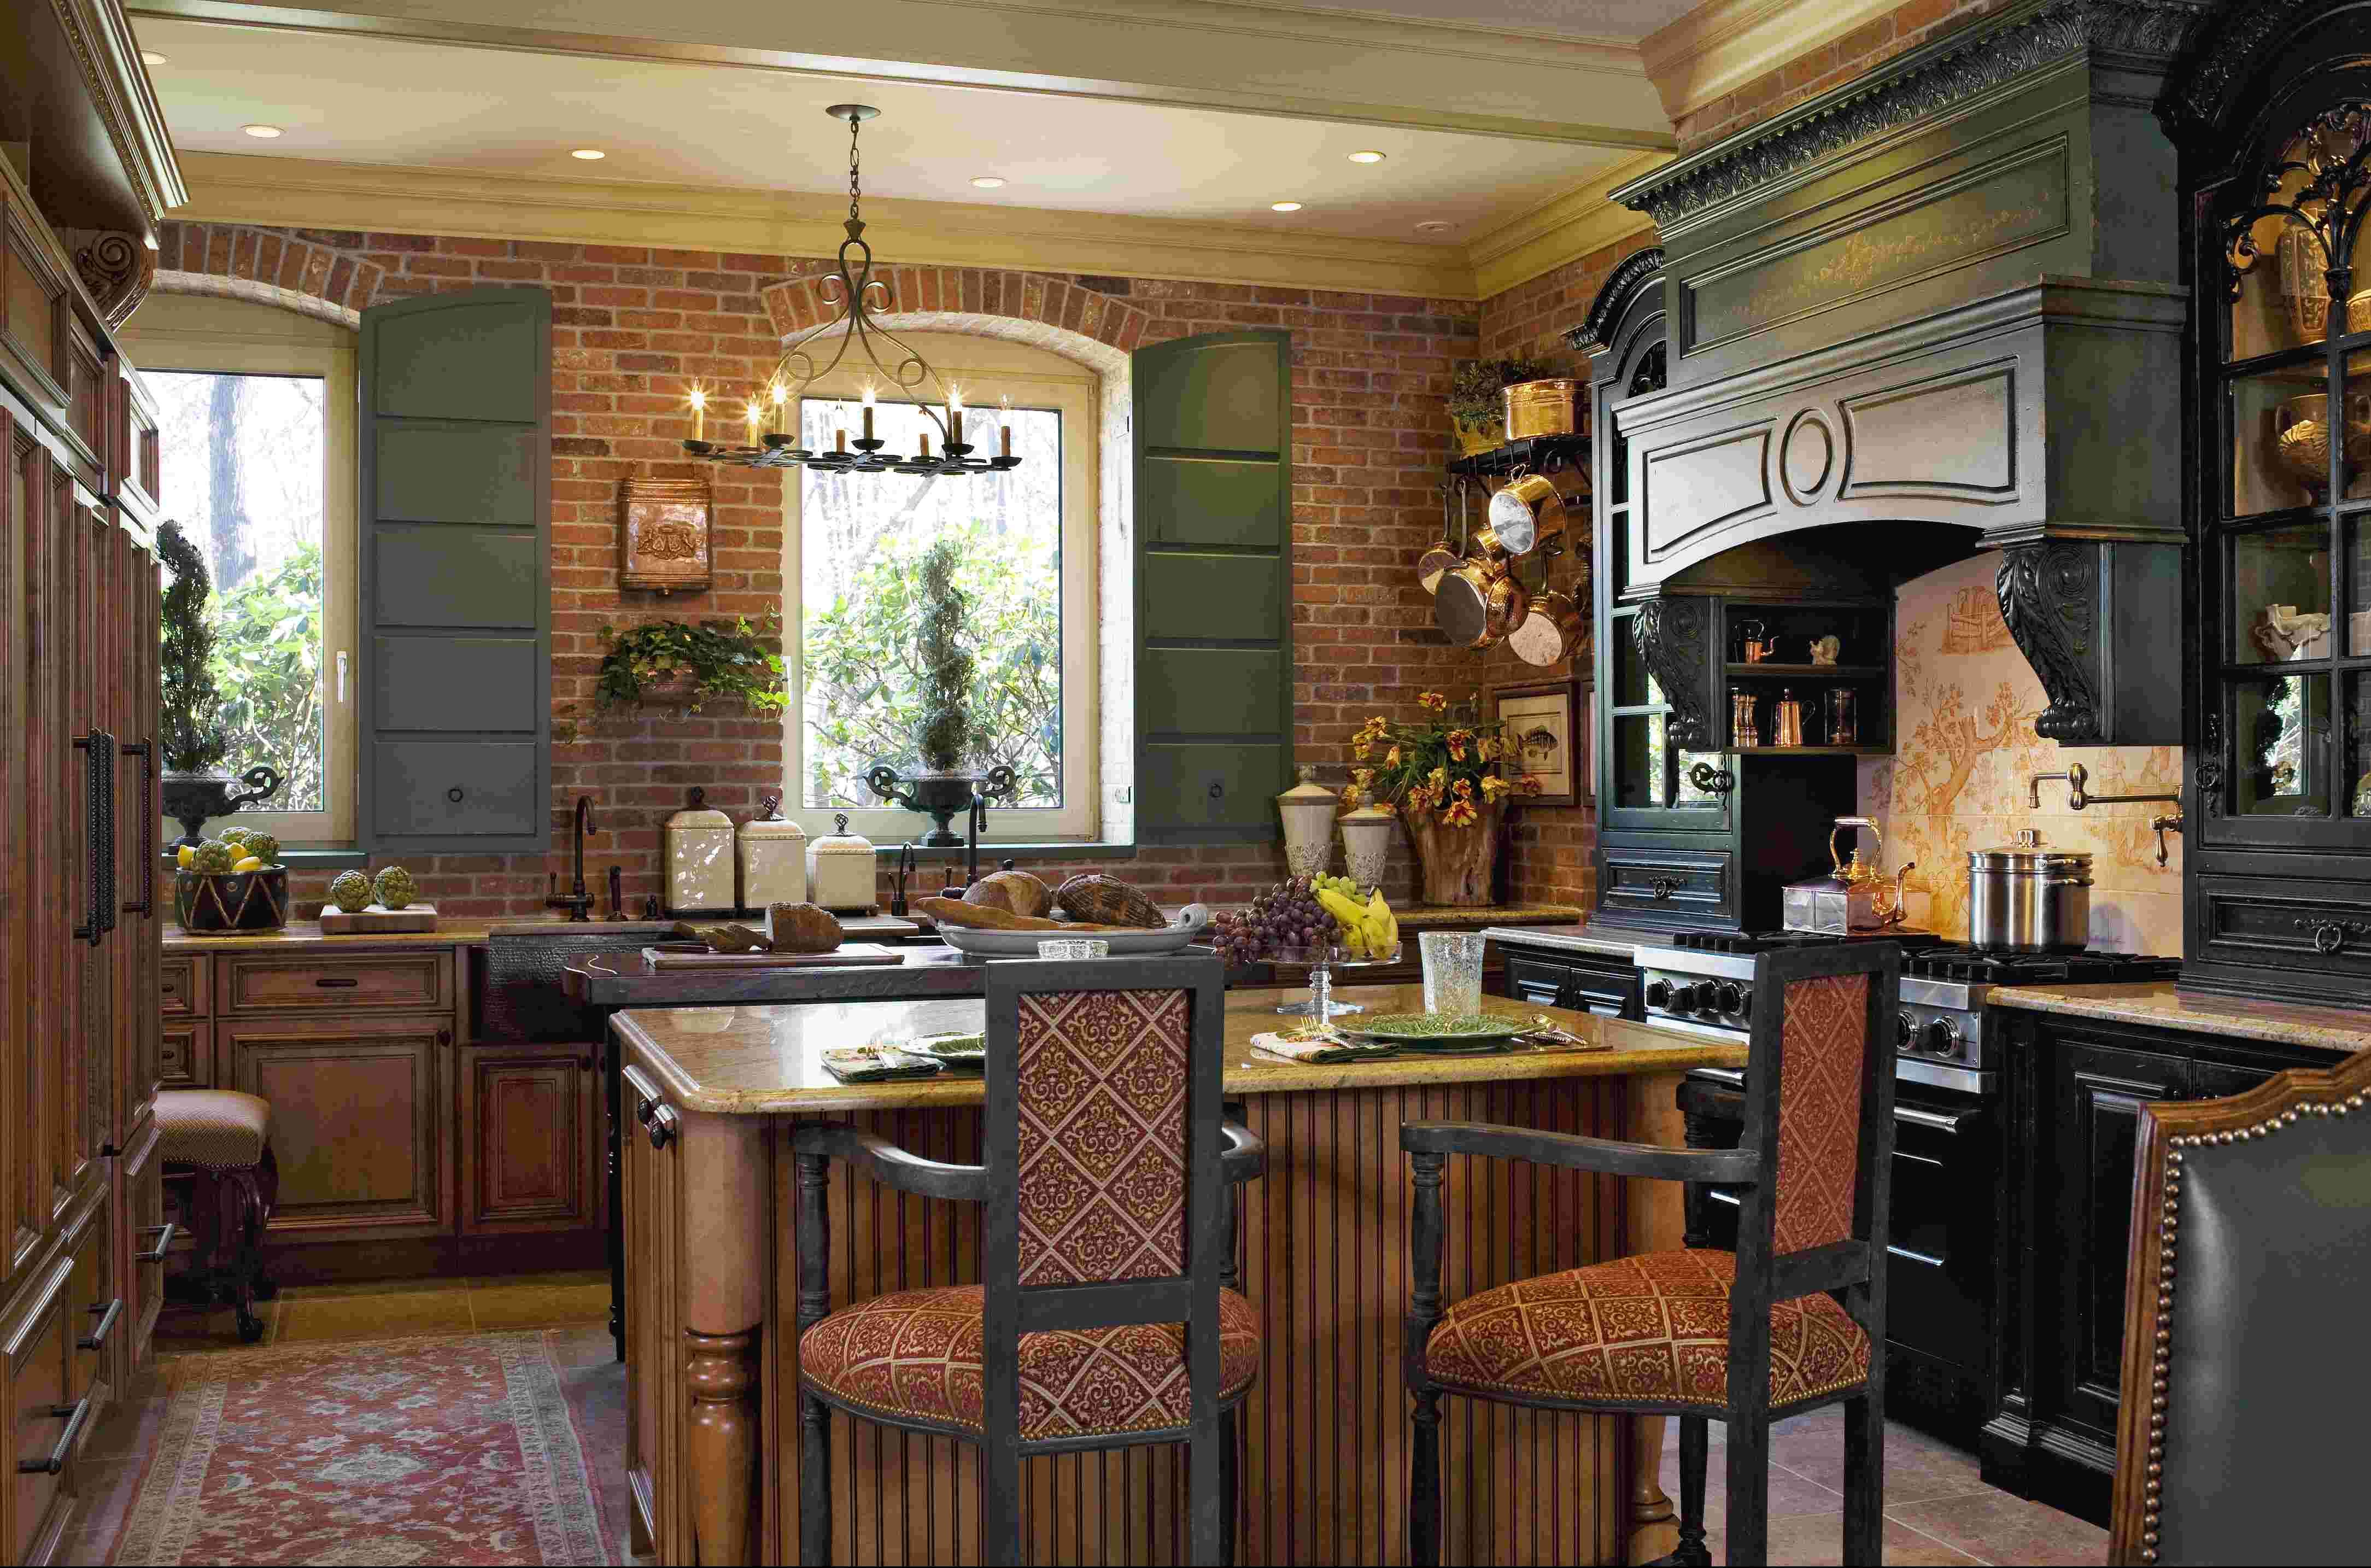 Ountry French Styled Kitchen,